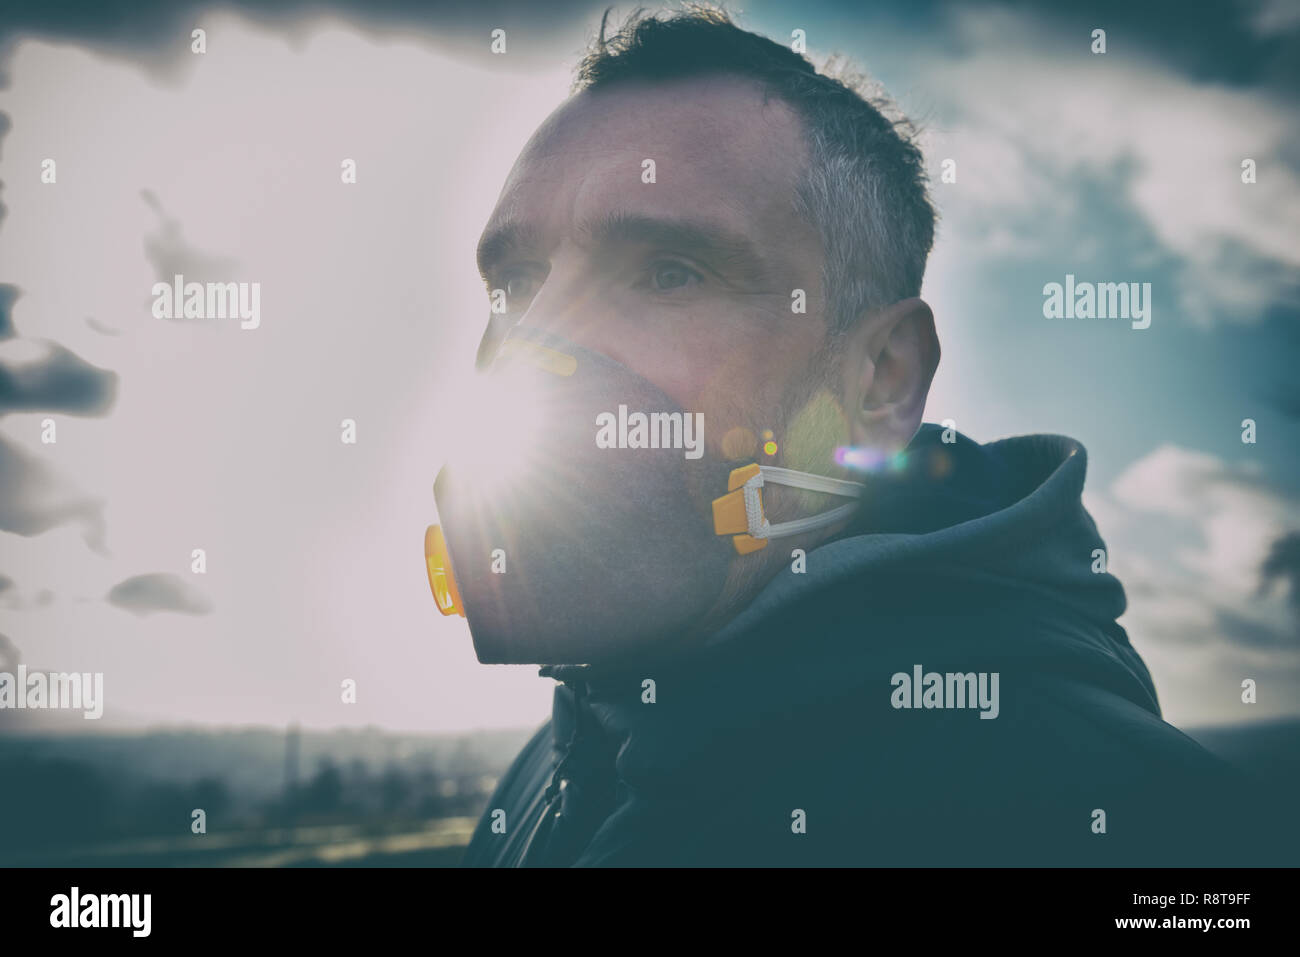 man wearing a real anti-pollution, anti-smog and viruses face mask; dense smog in air - Stock Image